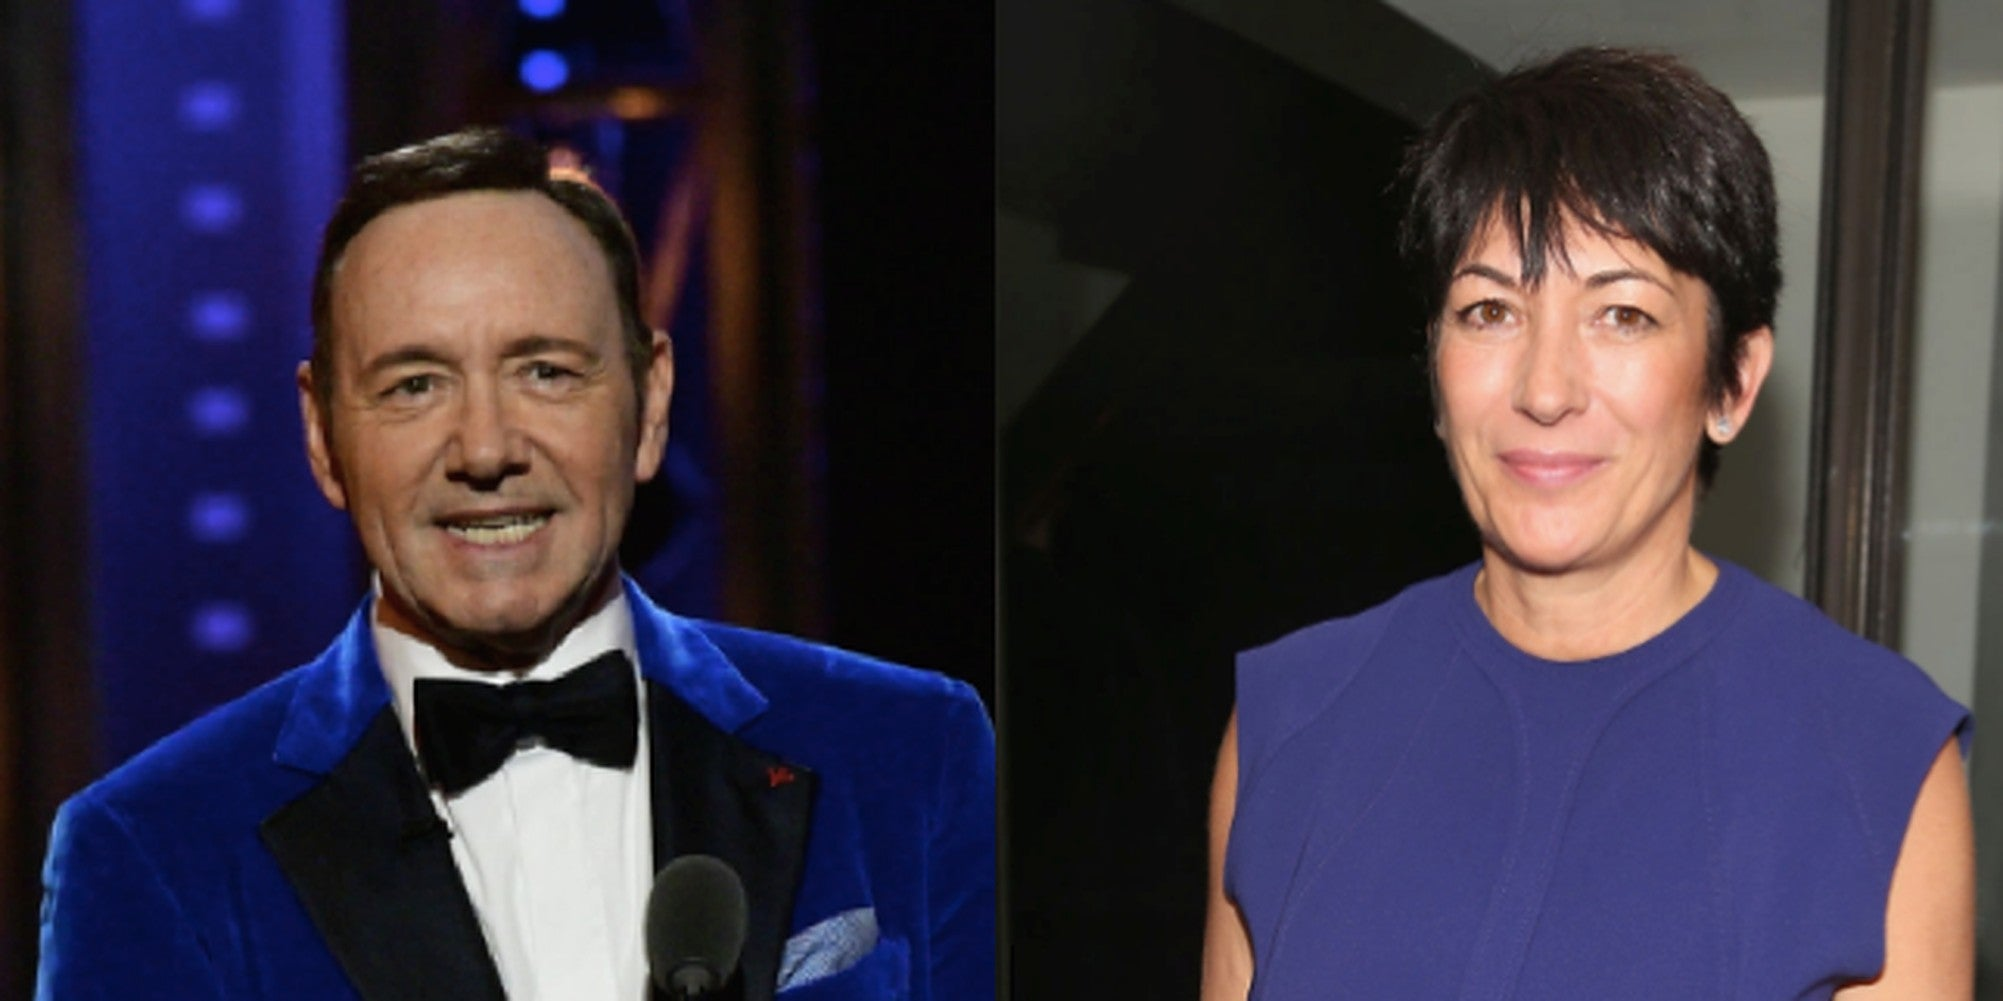 Outrage at photo of Ghislaine Maxwell and Kevin Spacey sitting on thrones in Buckingham Palace